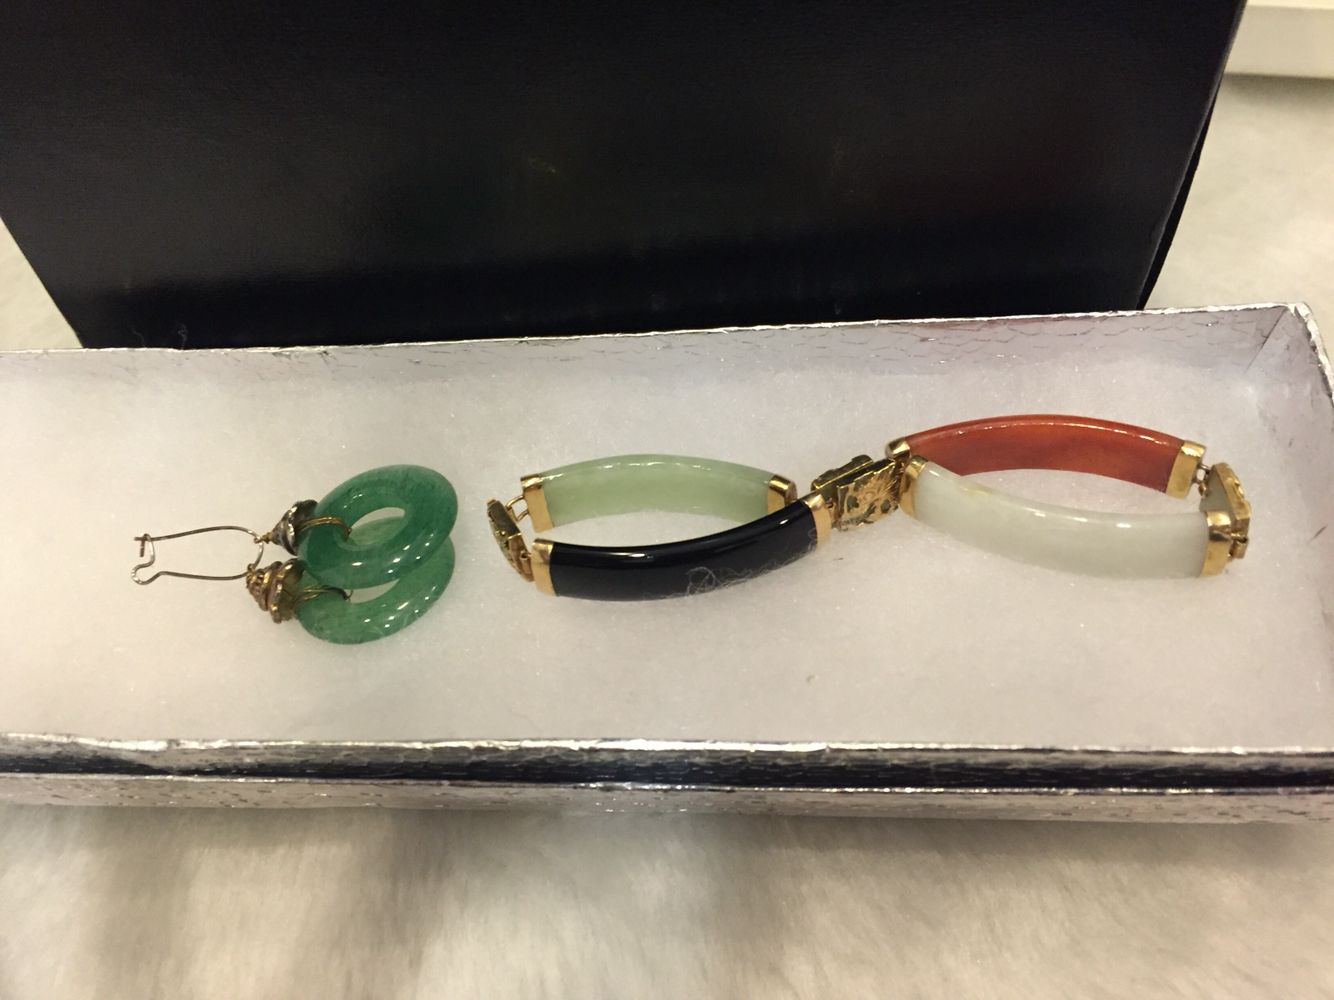 Jade earrings $ 30 and jade , precious stone with gold in between each connecting stone $ 50 Together as a set $75